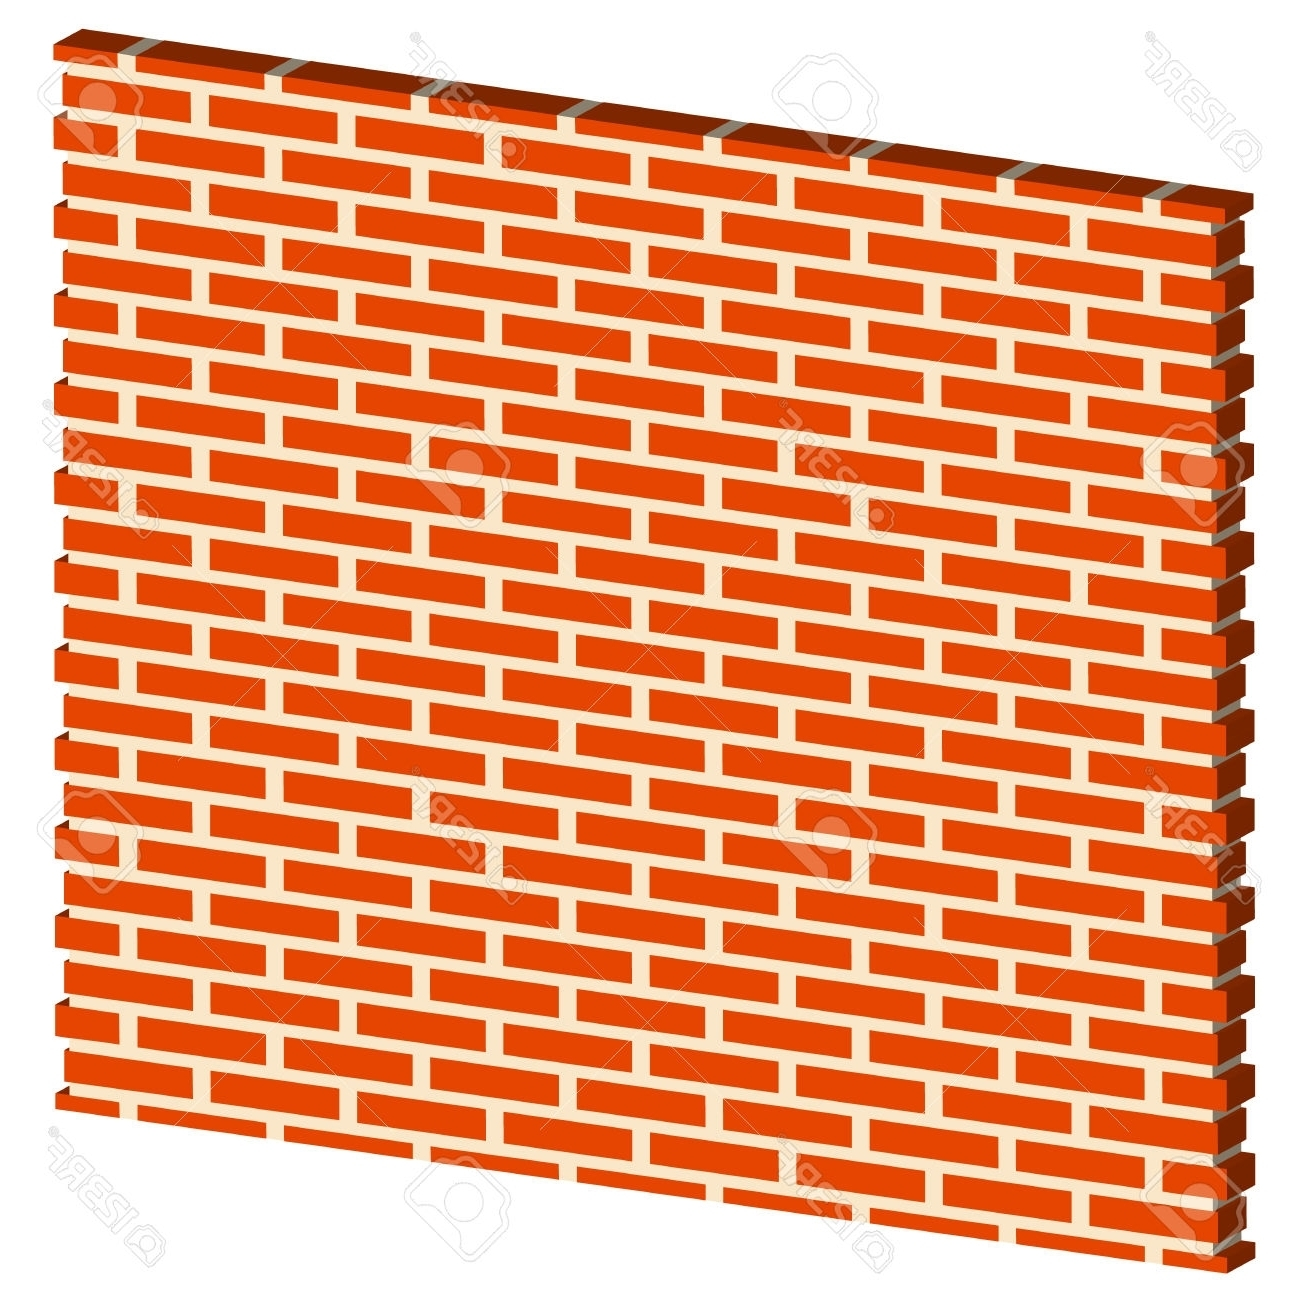 3D Brick Wall Art With Well Known 3D Clipart Brick Wall – Pencil And In Color 3D Clipart Brick Wall (View 9 of 15)